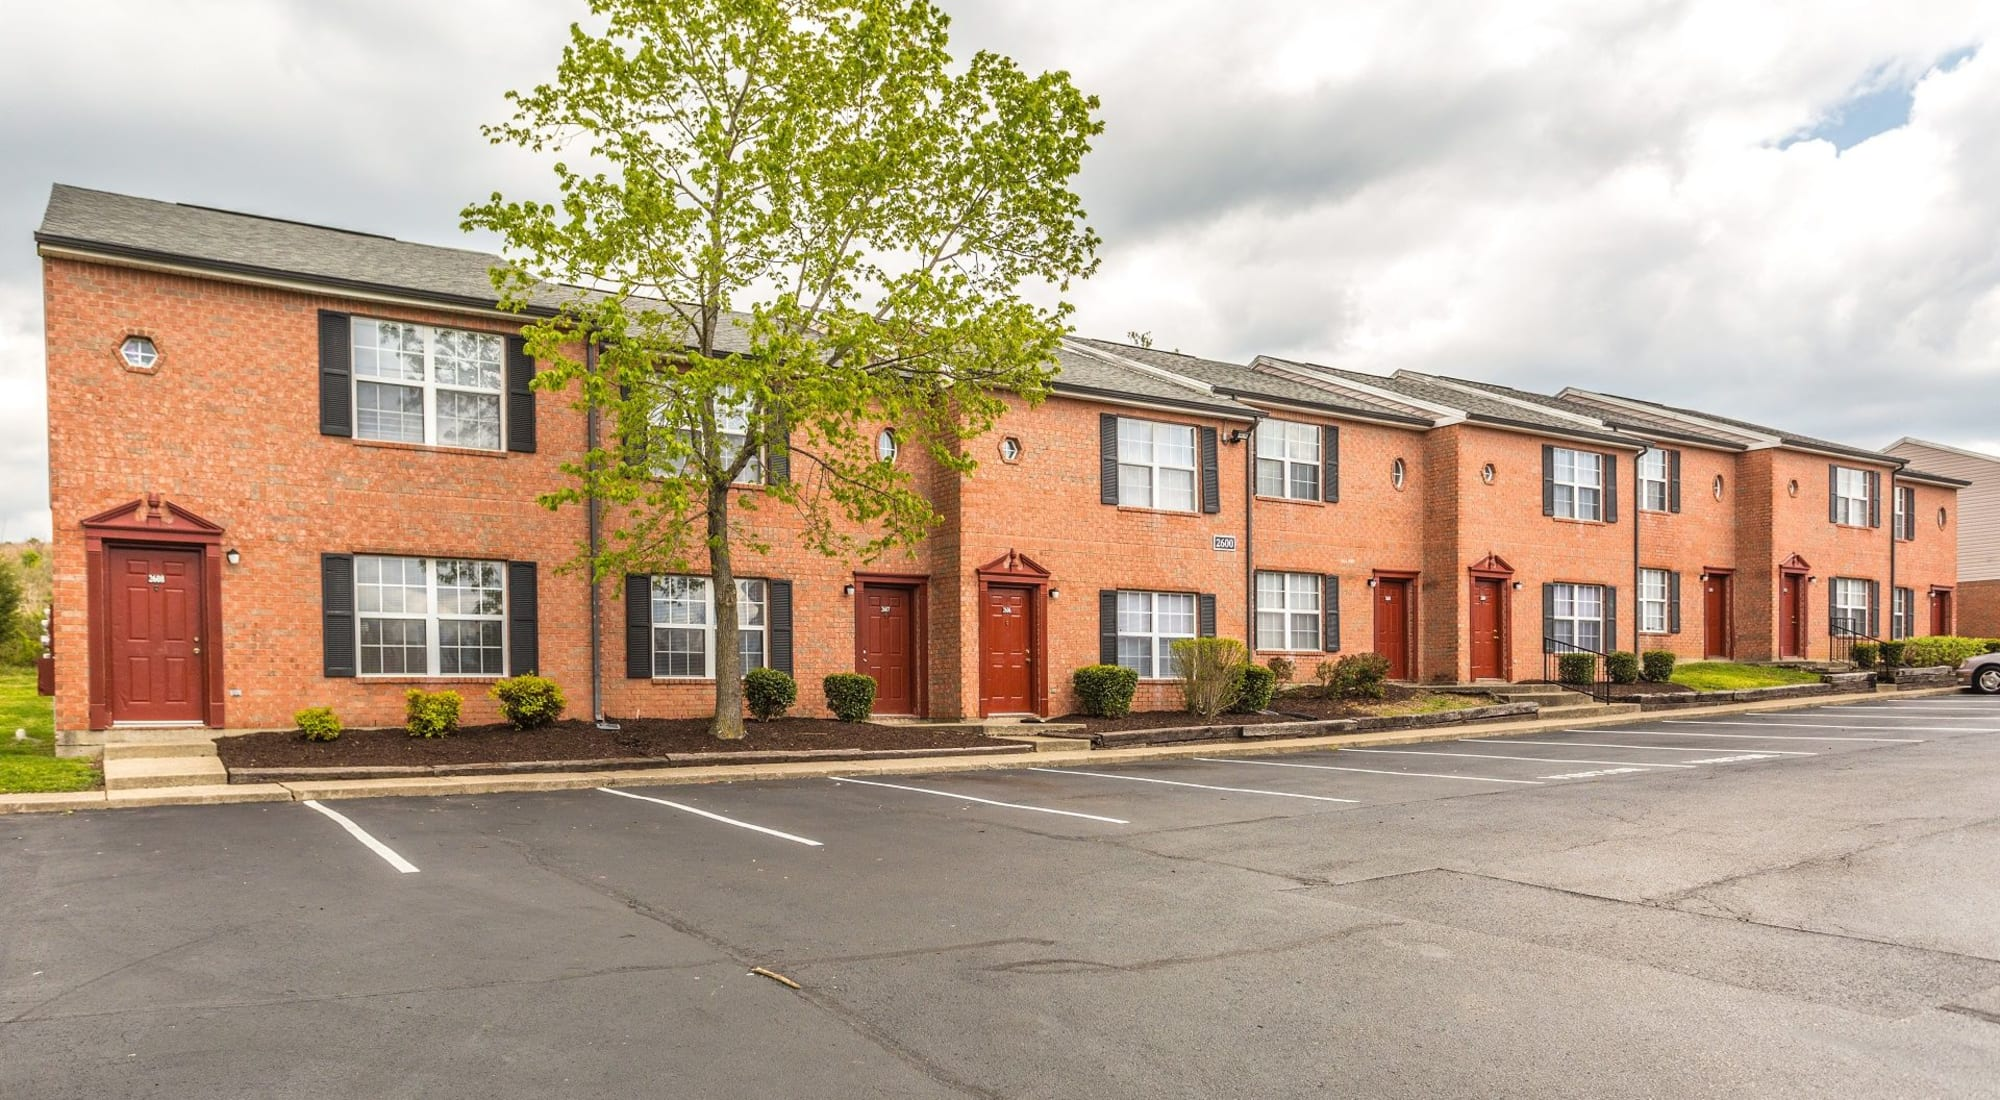 Directions to Cypress Creek Townhomes in Goodlettsville, Tennessee